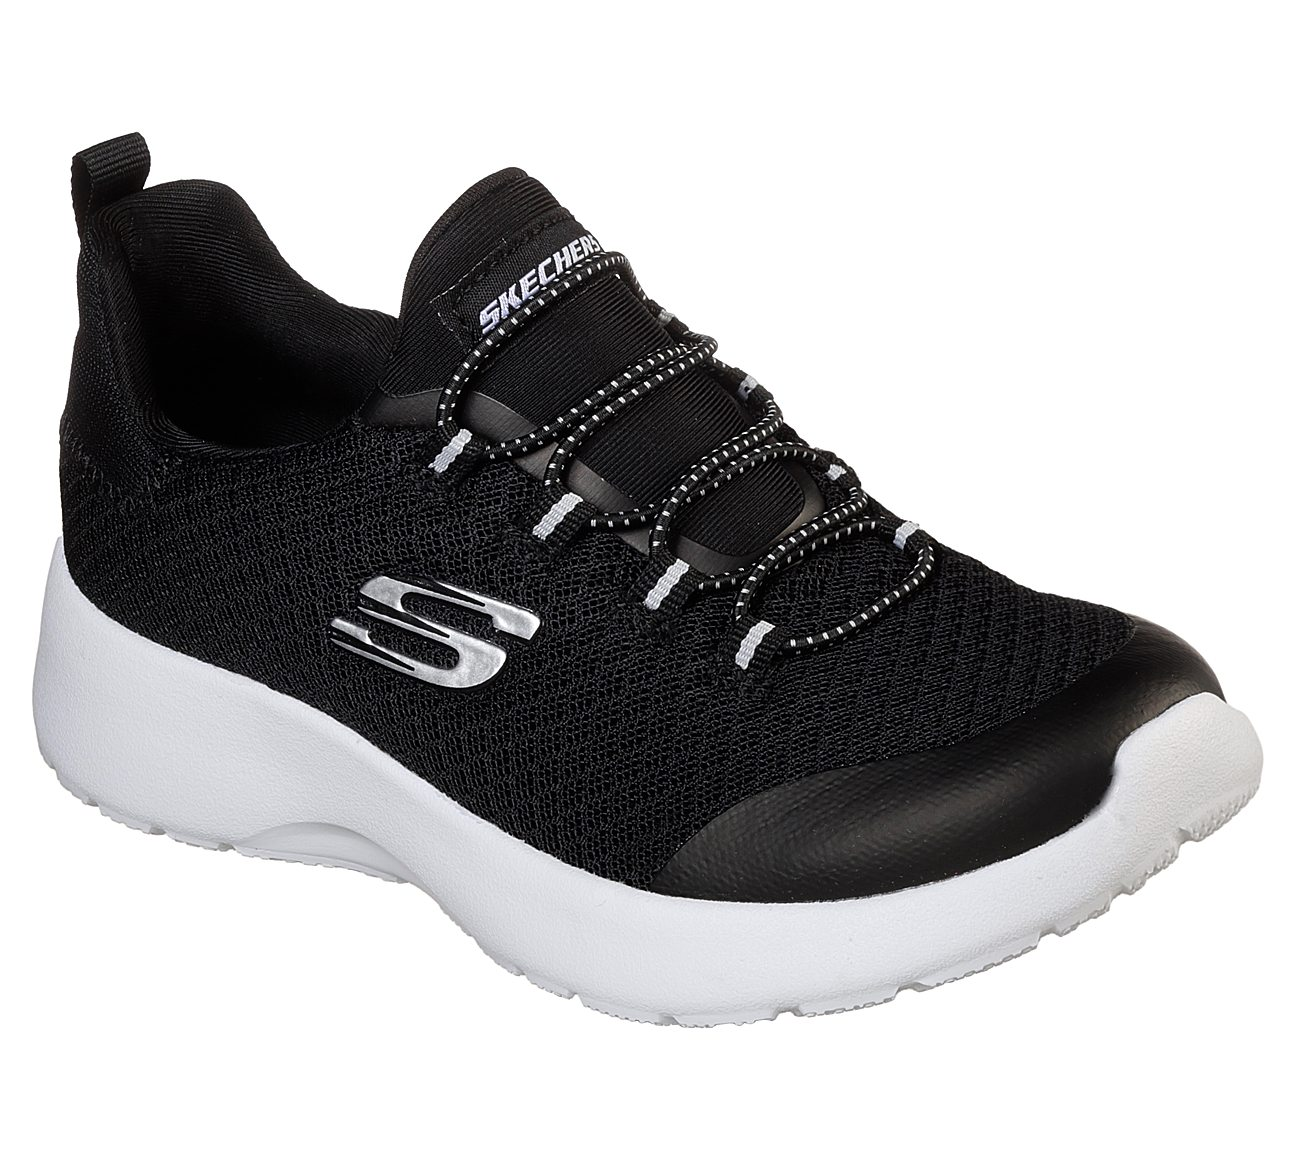 Skechers Dynamight Womens Slip On Sneakers Black/White 6 Visita Salida De Nuevo eIwRVCo3